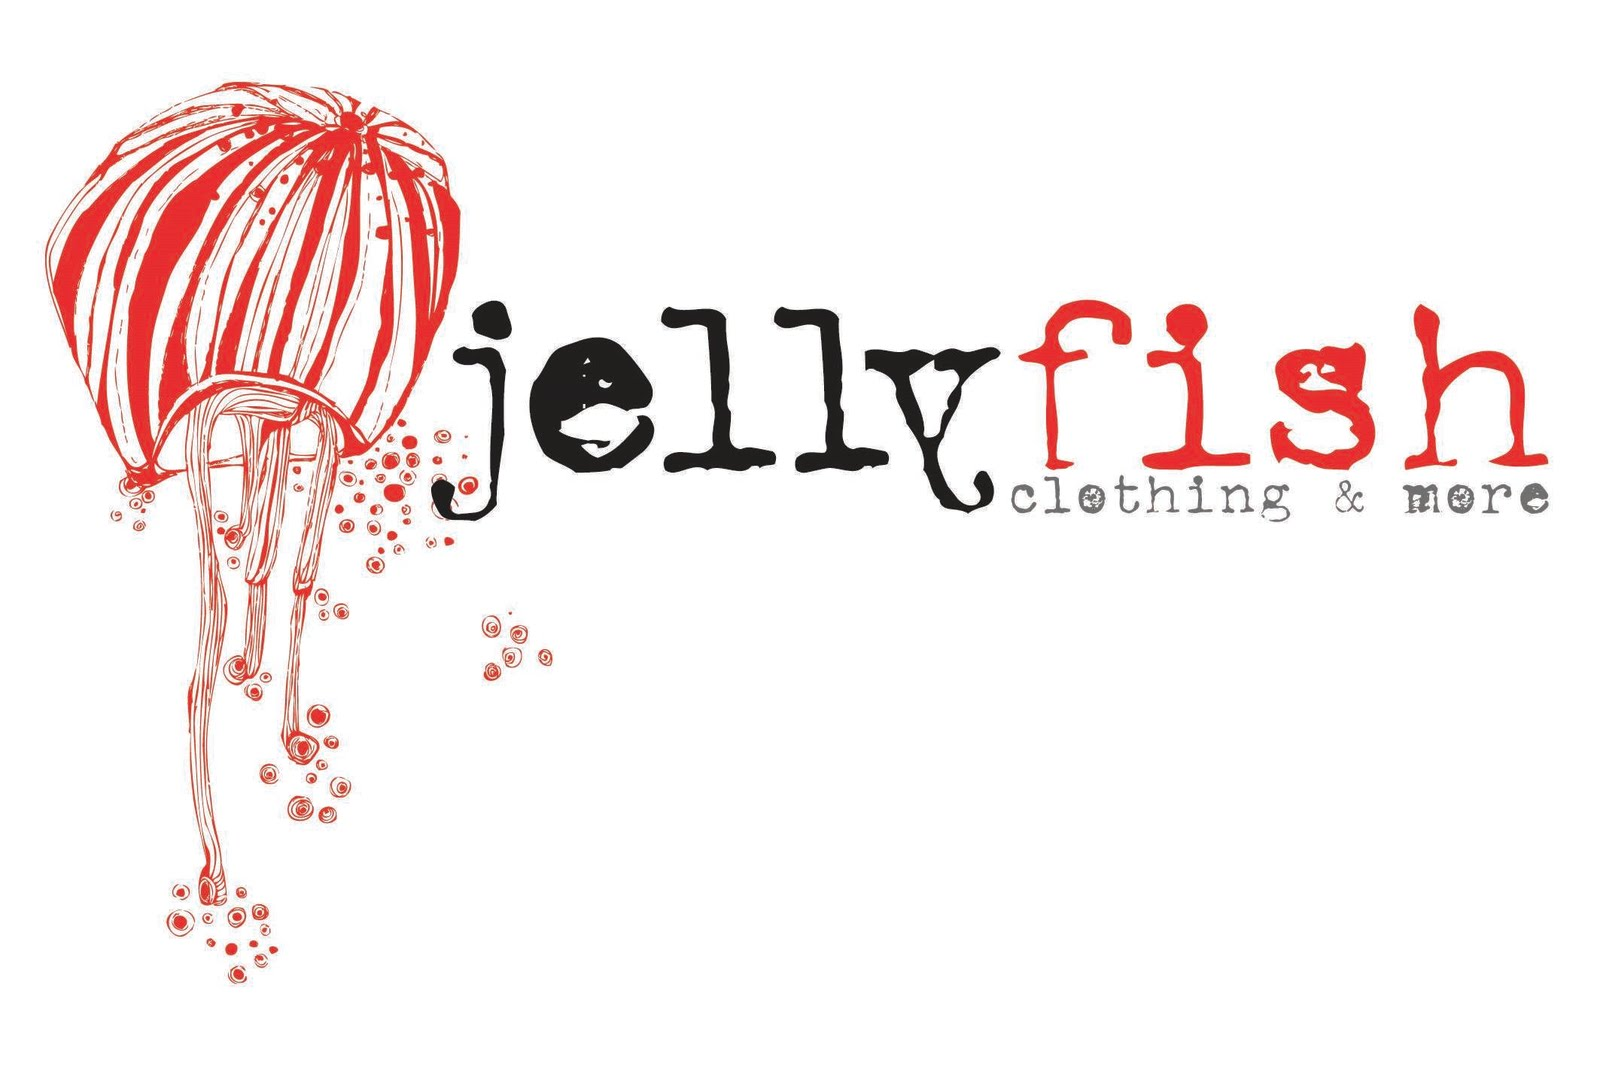 jellyfish clothing amp more